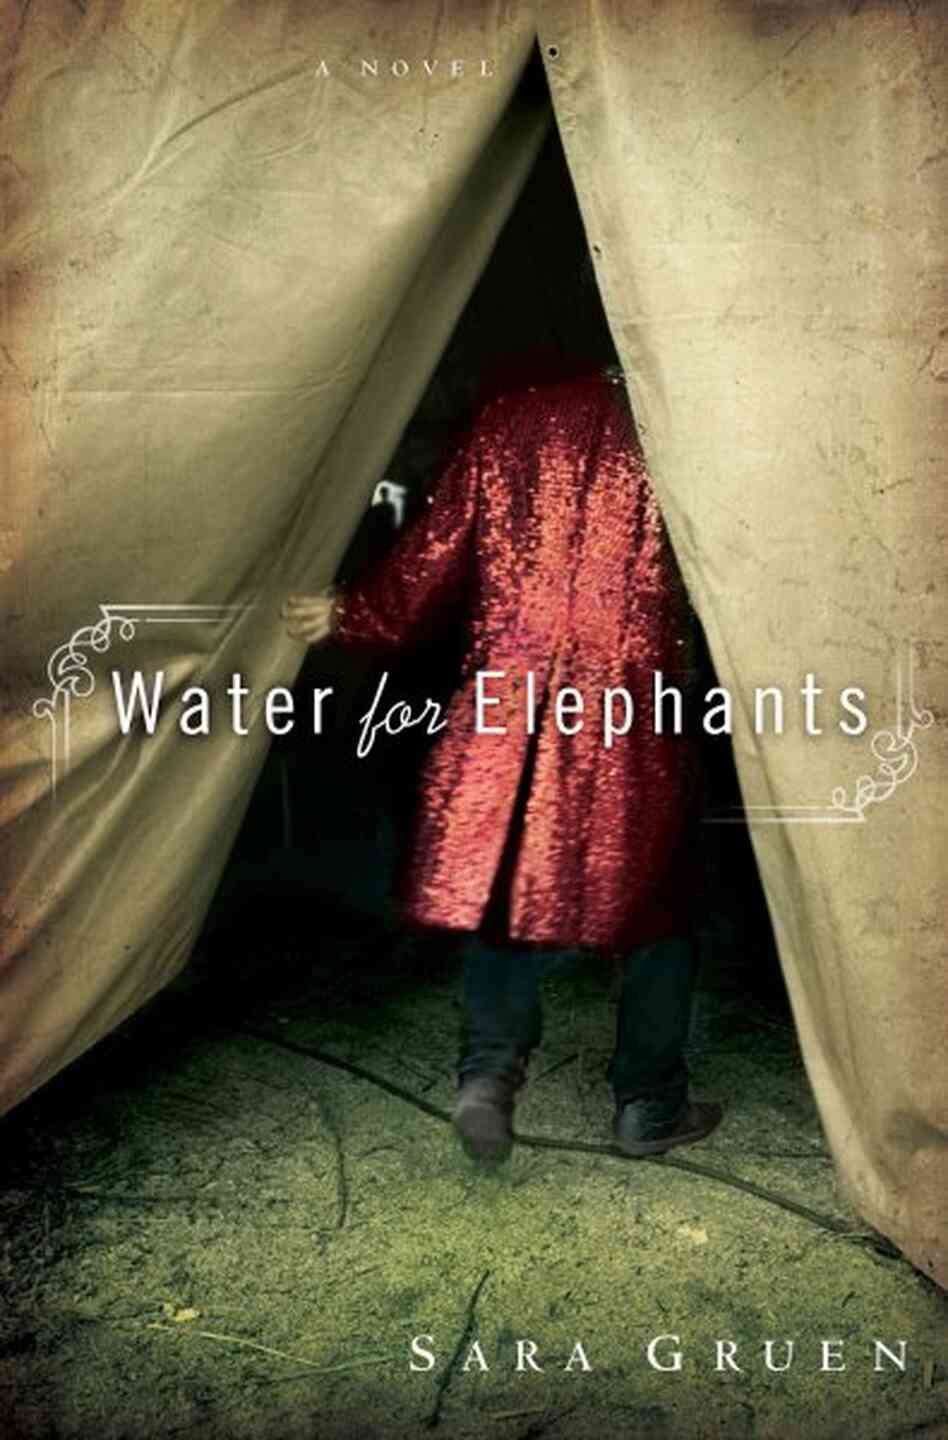 analysis water for elephants Chapter one: the circus came to town mr jacob jankowski is 90 or 93 and he can't walk all to well but when he seen that the circus was in town, he hobbled to the window to see the circus tent while he was at dinner, one of the new comers to the nursing home was saying how he gave water to the elephants.